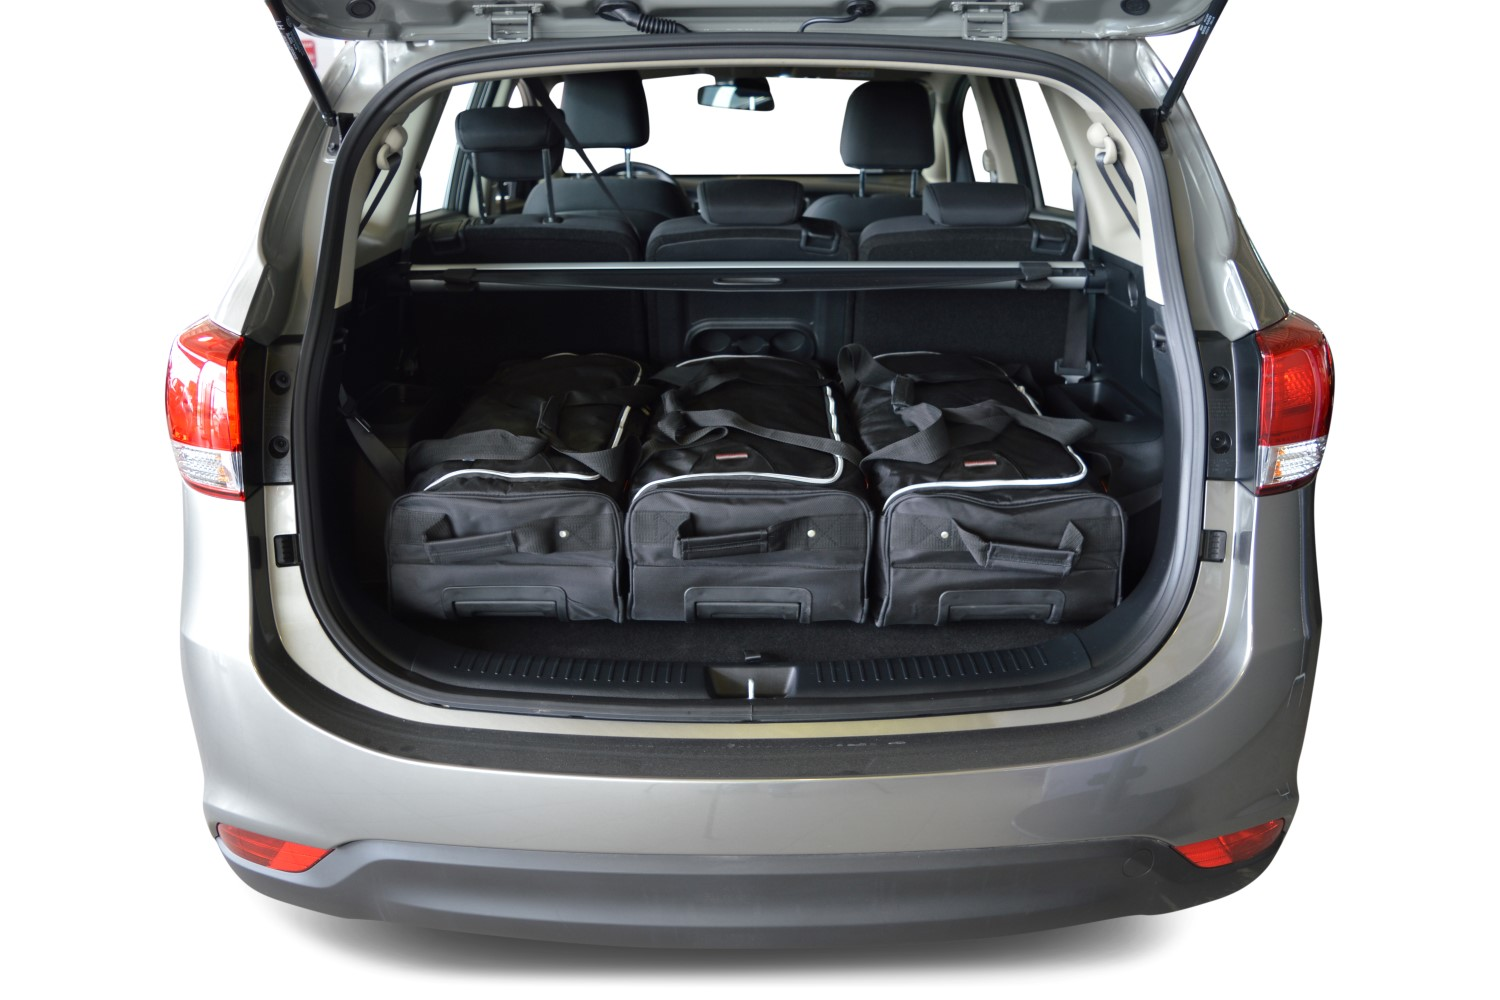 k11201s-kia-carens-13-car-bags-2